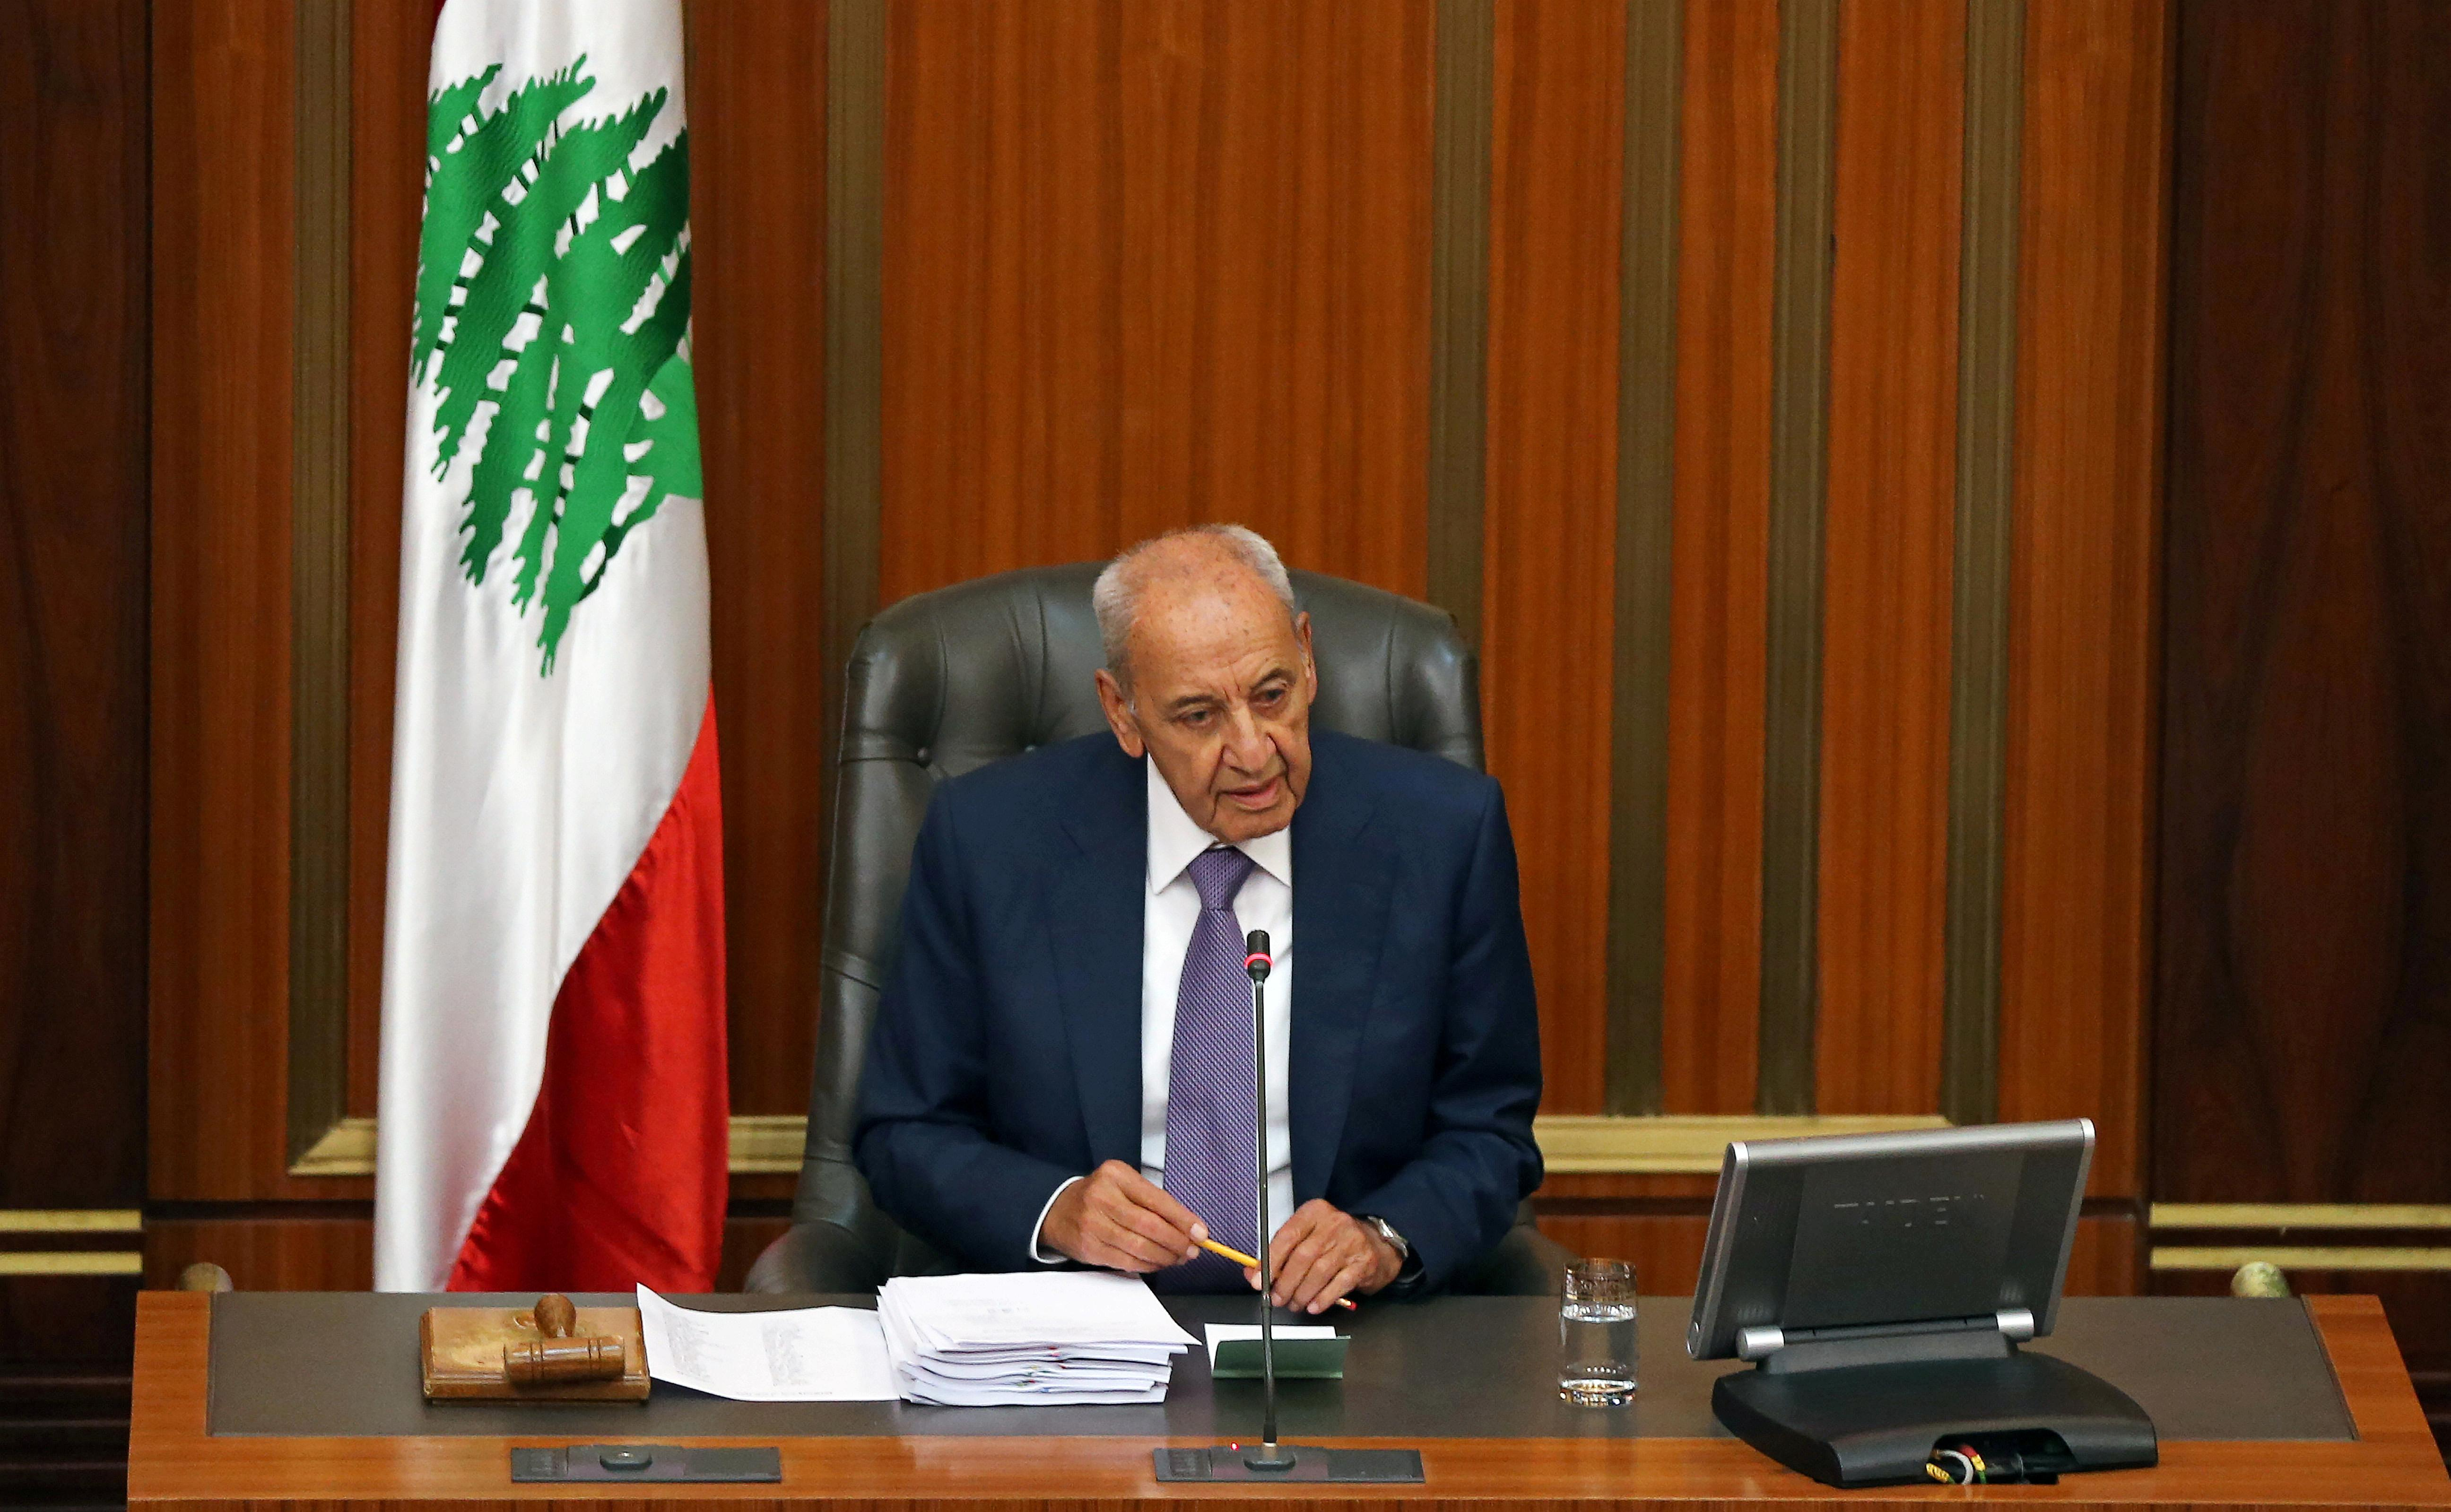 Lebanon's Speaker Berri says situation in Lebanon getting more...